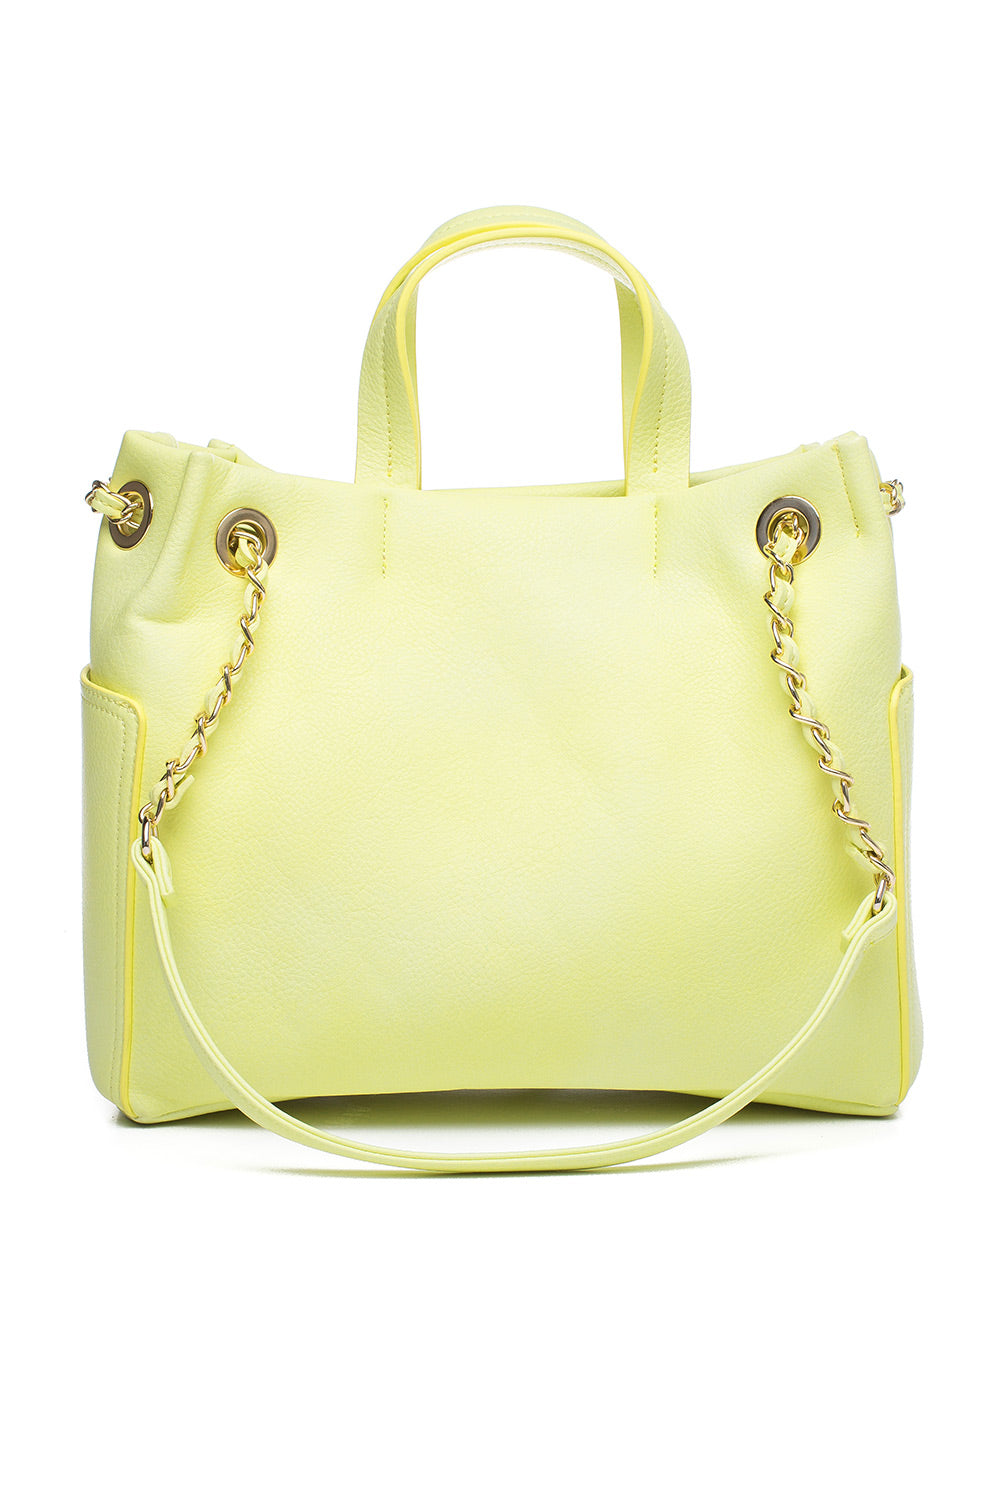 Type 1 Lemon Custard Handbag